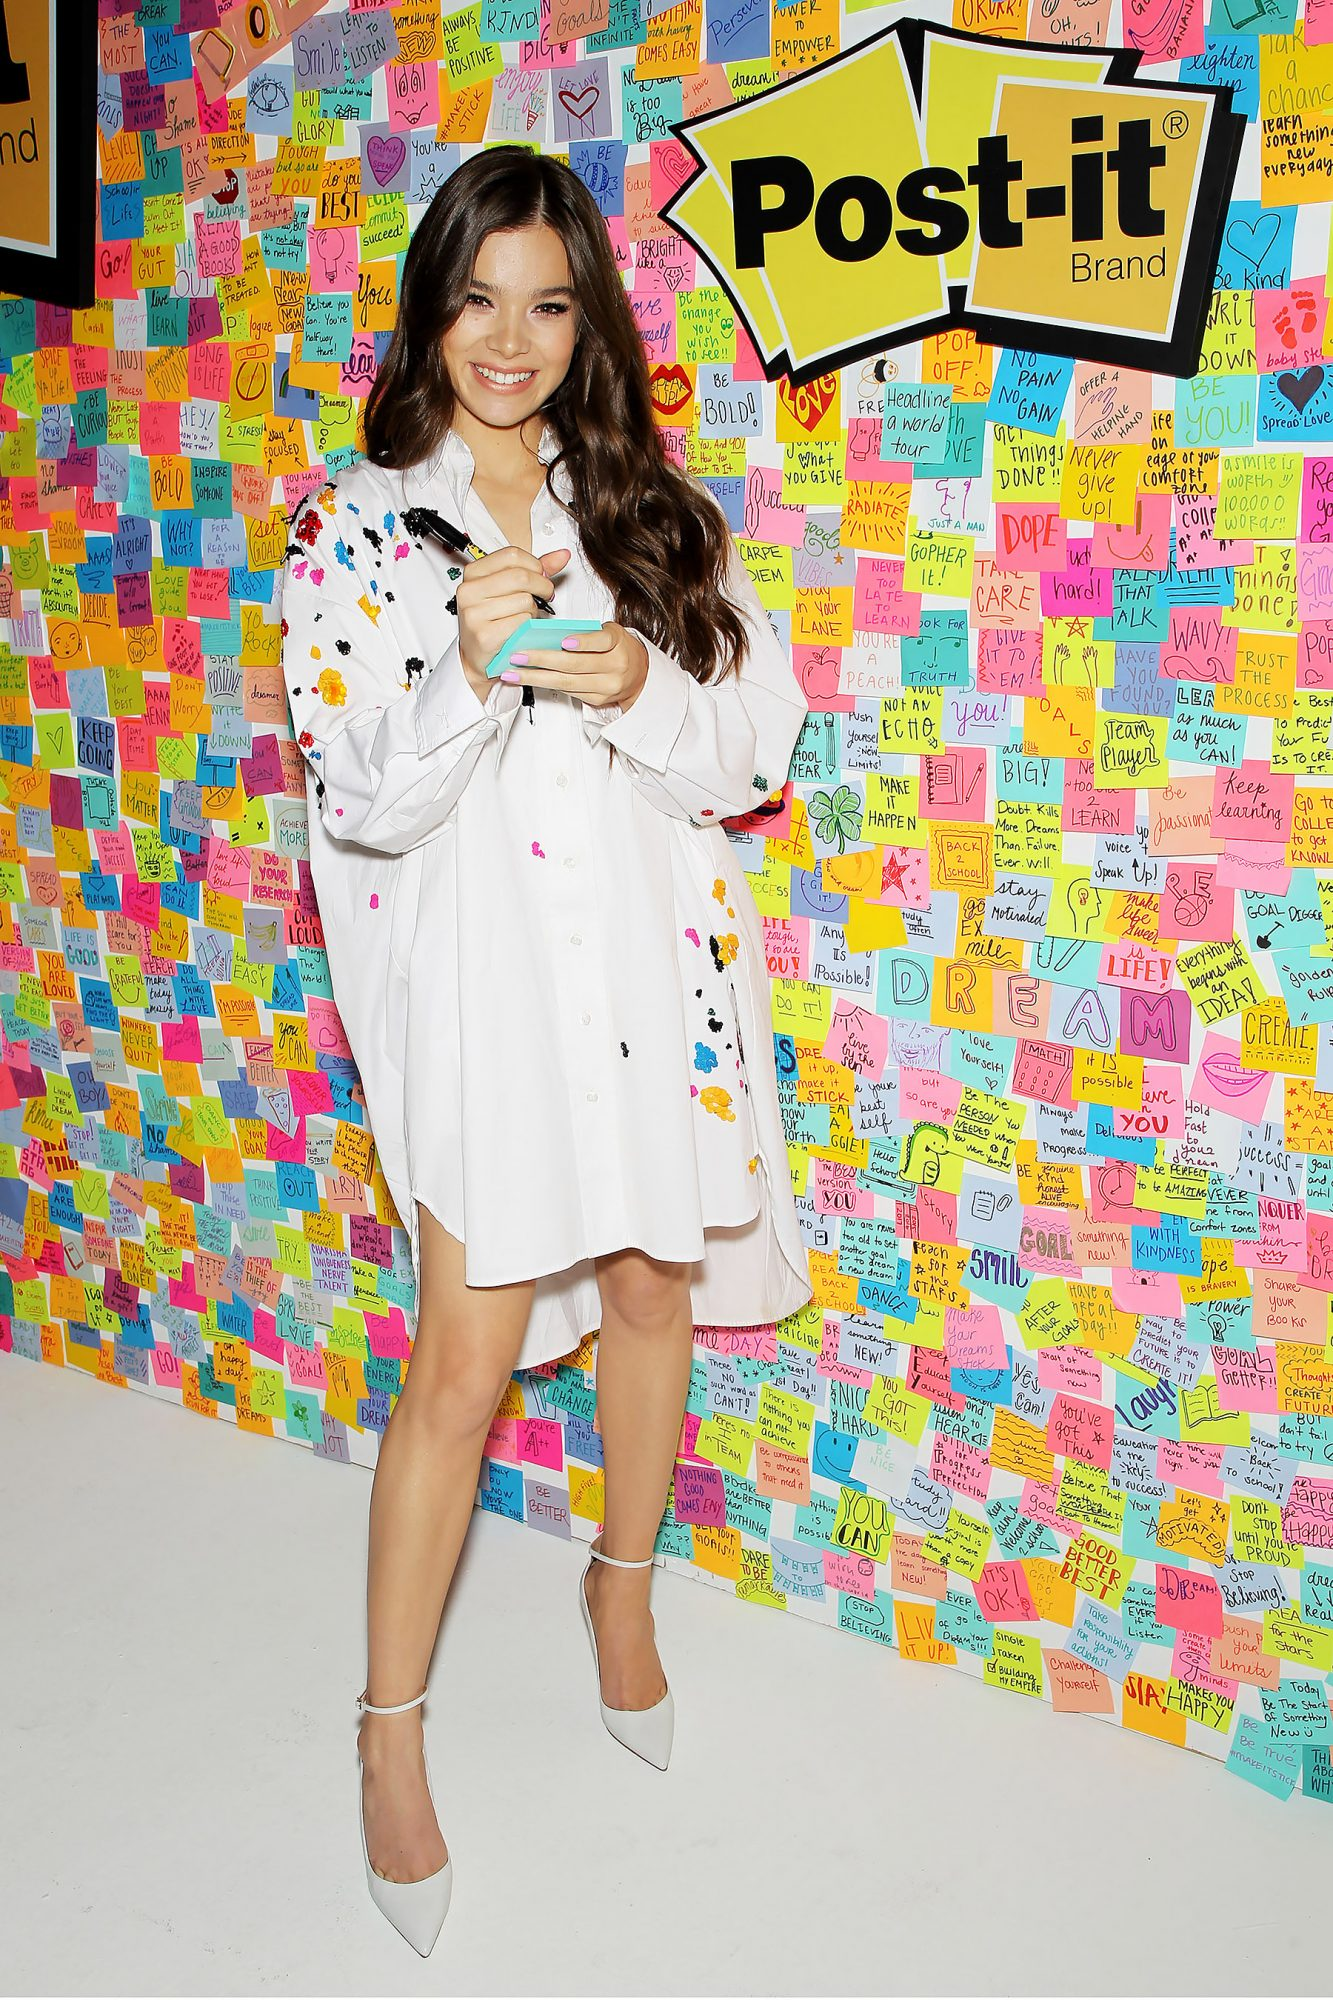 Hailee Steinfeld and Post-it Brand Inspire Students to Make Dreams Stick, New York, USA - 23 Jul 2018